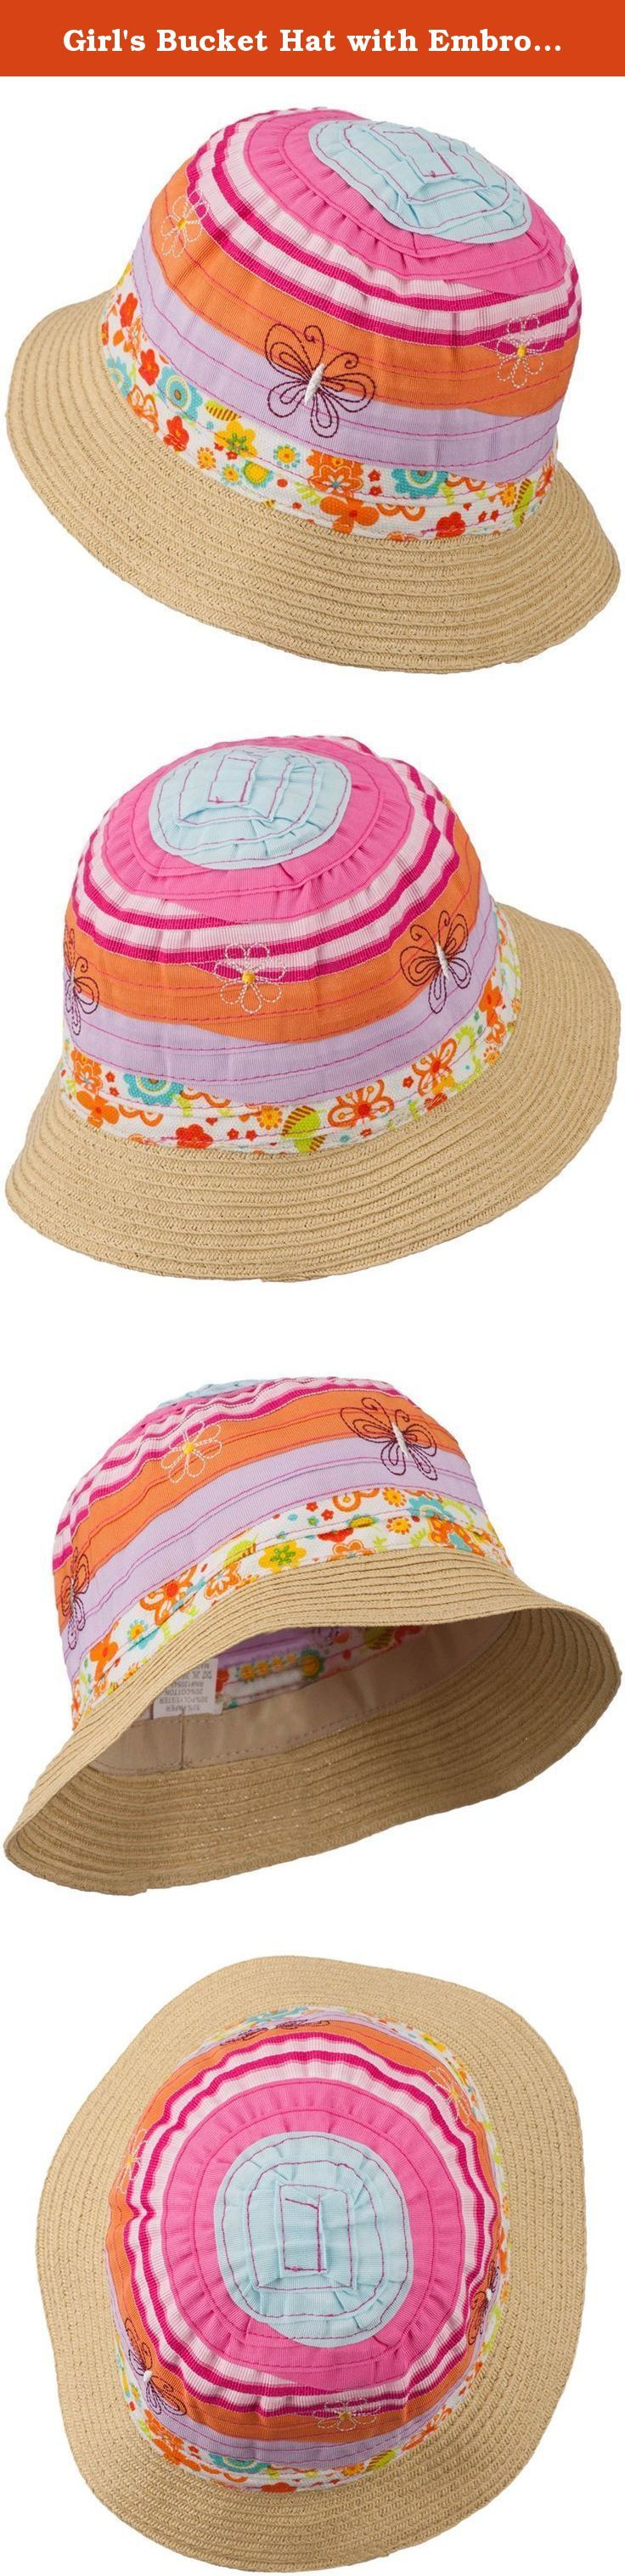 Girl's Bucket Hat with Embroidered Flowers and Butterflies - Orange Pink 52CM. For all those special spring and summer occasions, accessorize your little one with our new Orange Pink Girl's Bucket Hat with Embroidered Flowers and Butterflies. Made from paper straw material, this colorful hat is the perfect choice to go along with all your little girl's spring holiday dresses or even summer bathing suits. Featuring a flexible brim, this hat will put you at ease knowing your child will be…